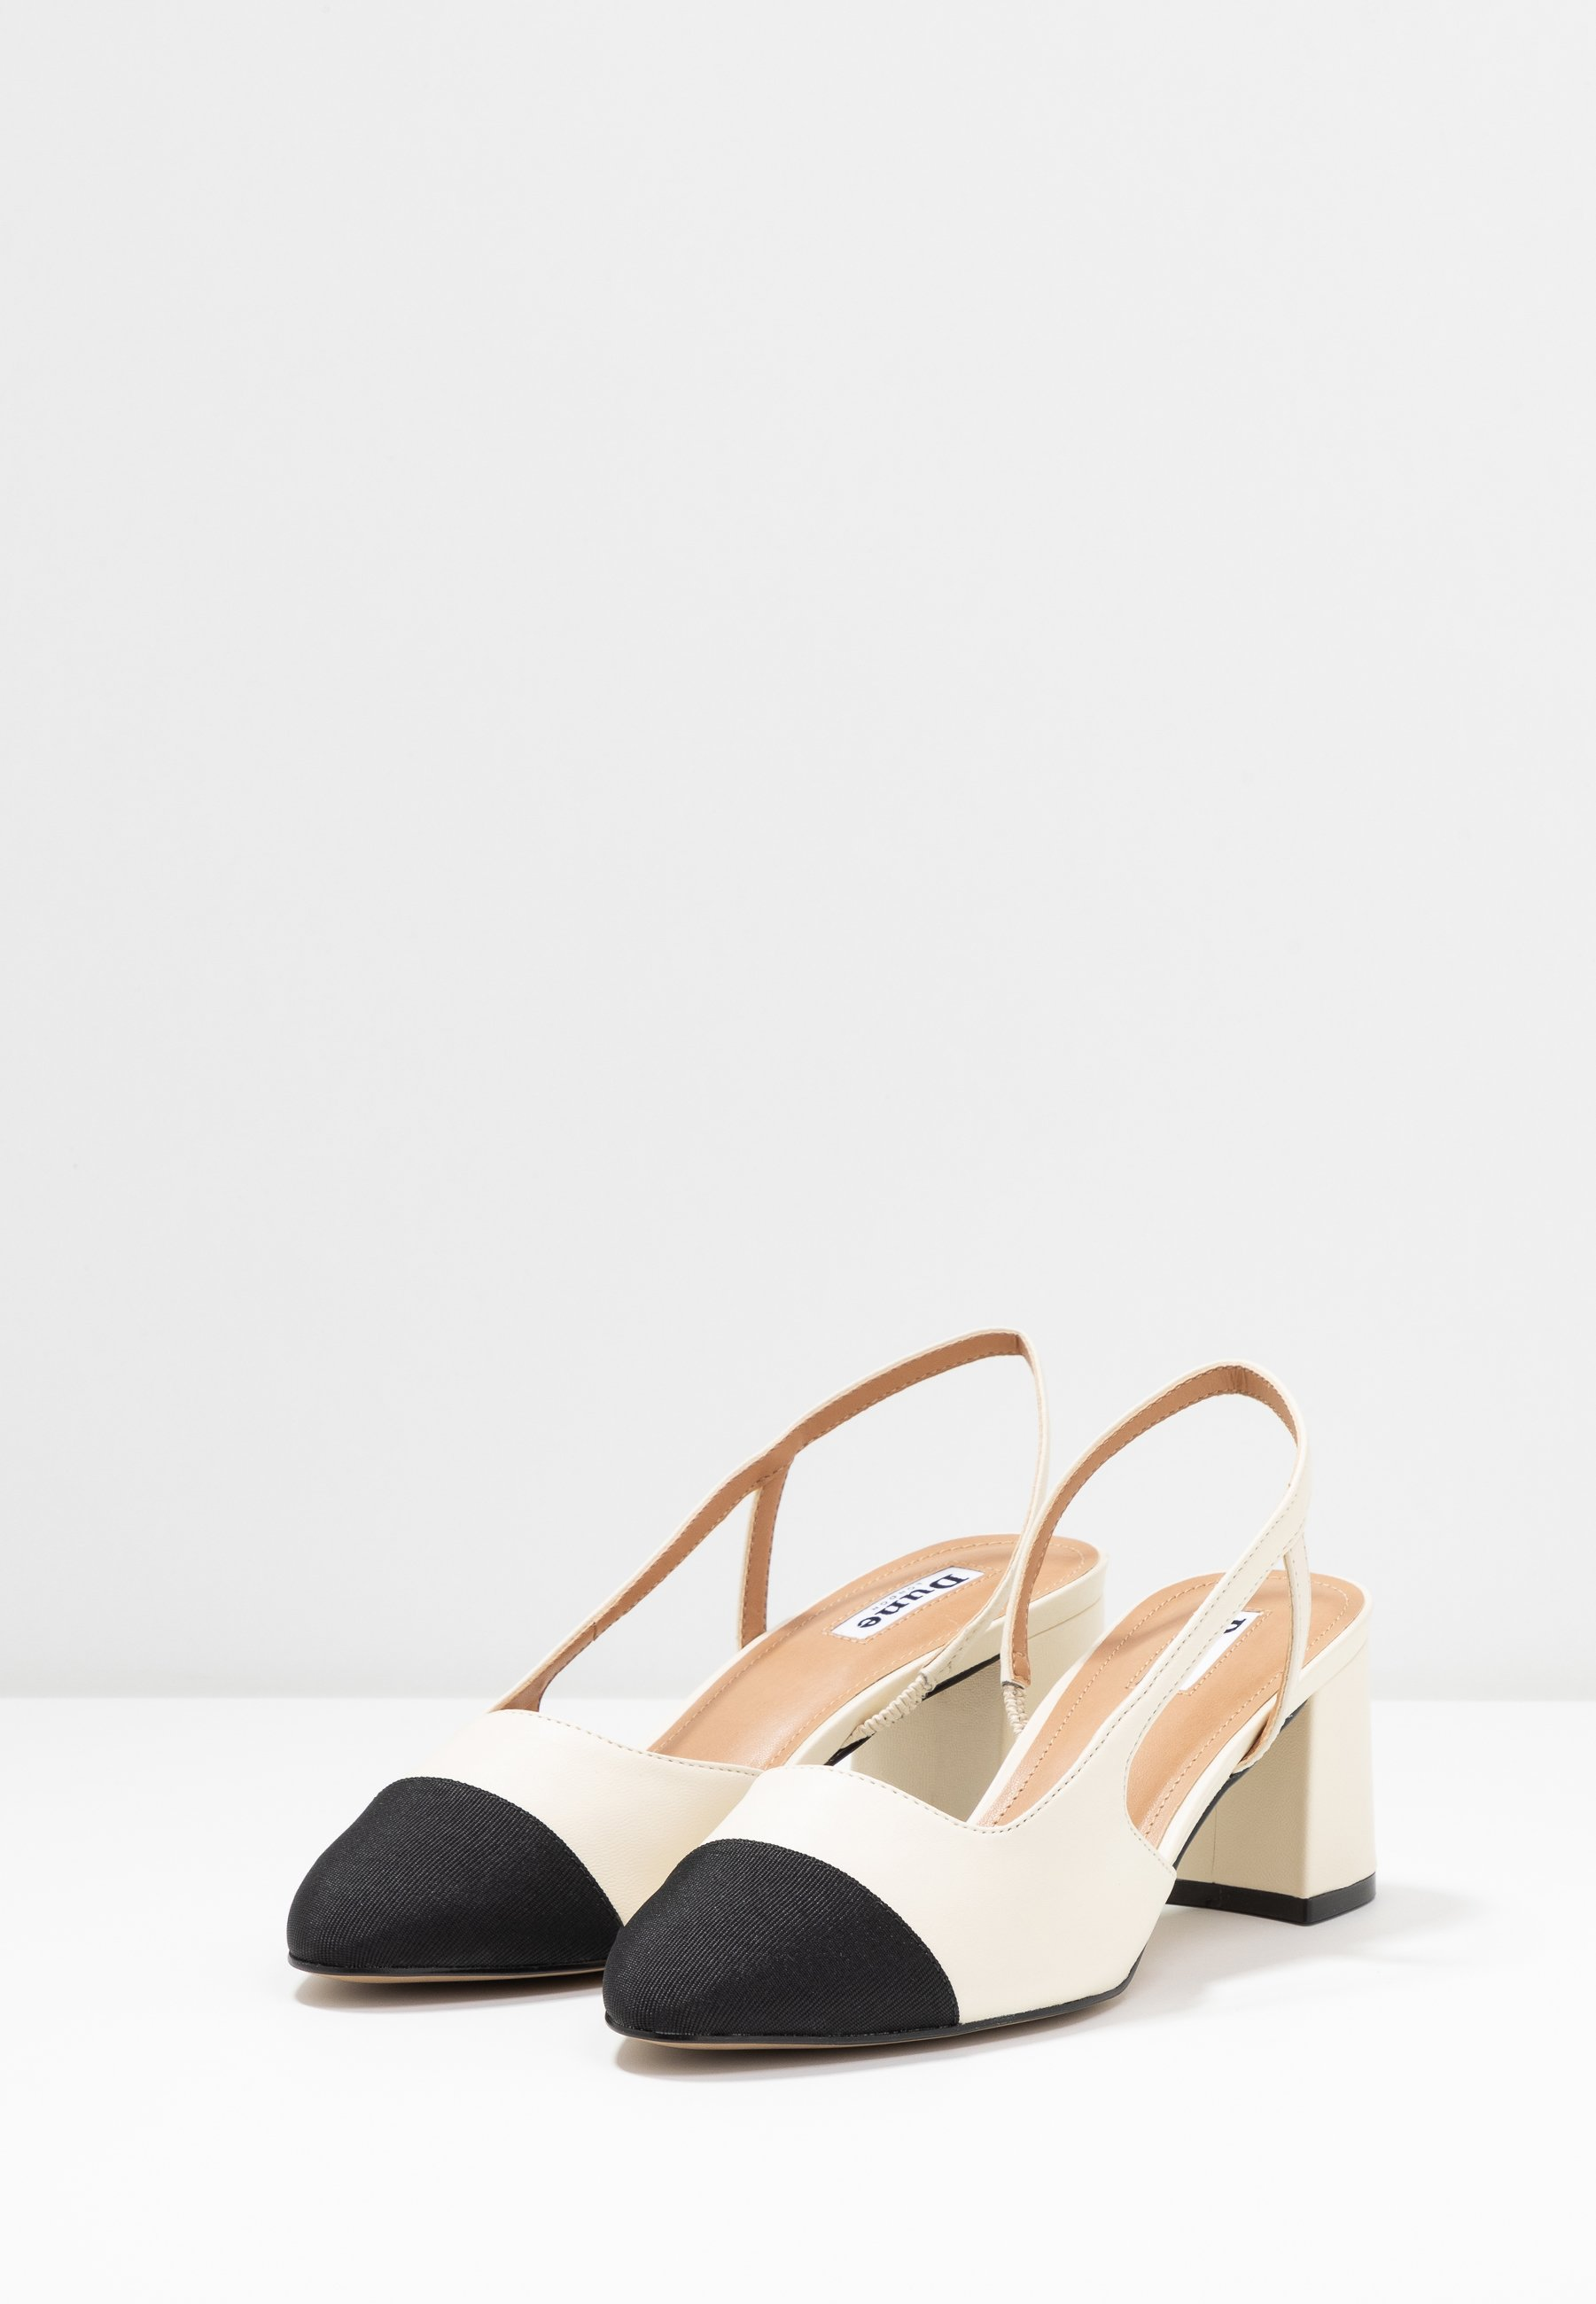 Dune London Crofts - Pumps Ivory